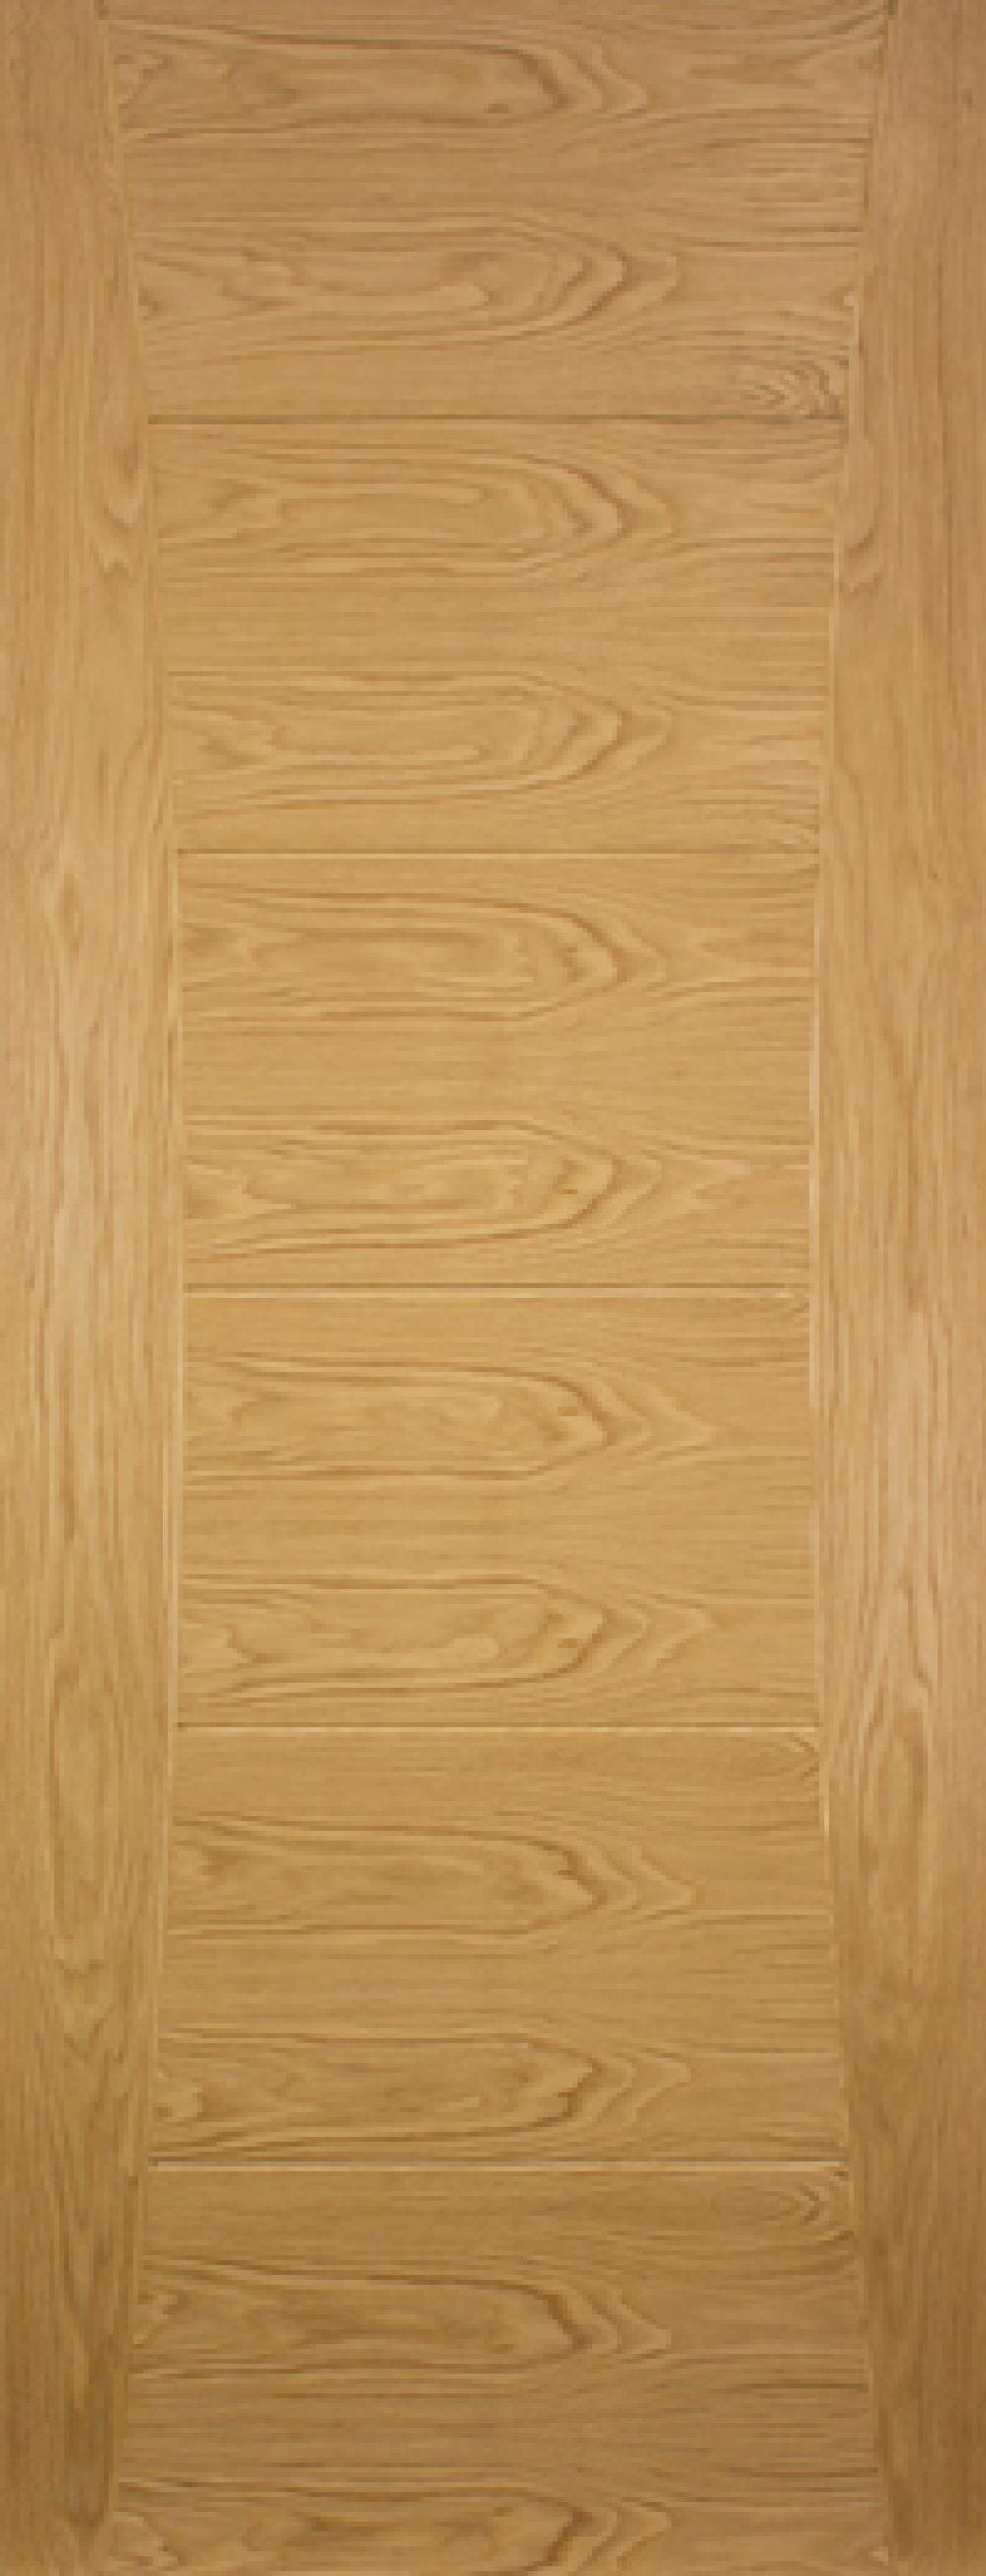 Prefinished Oak Image